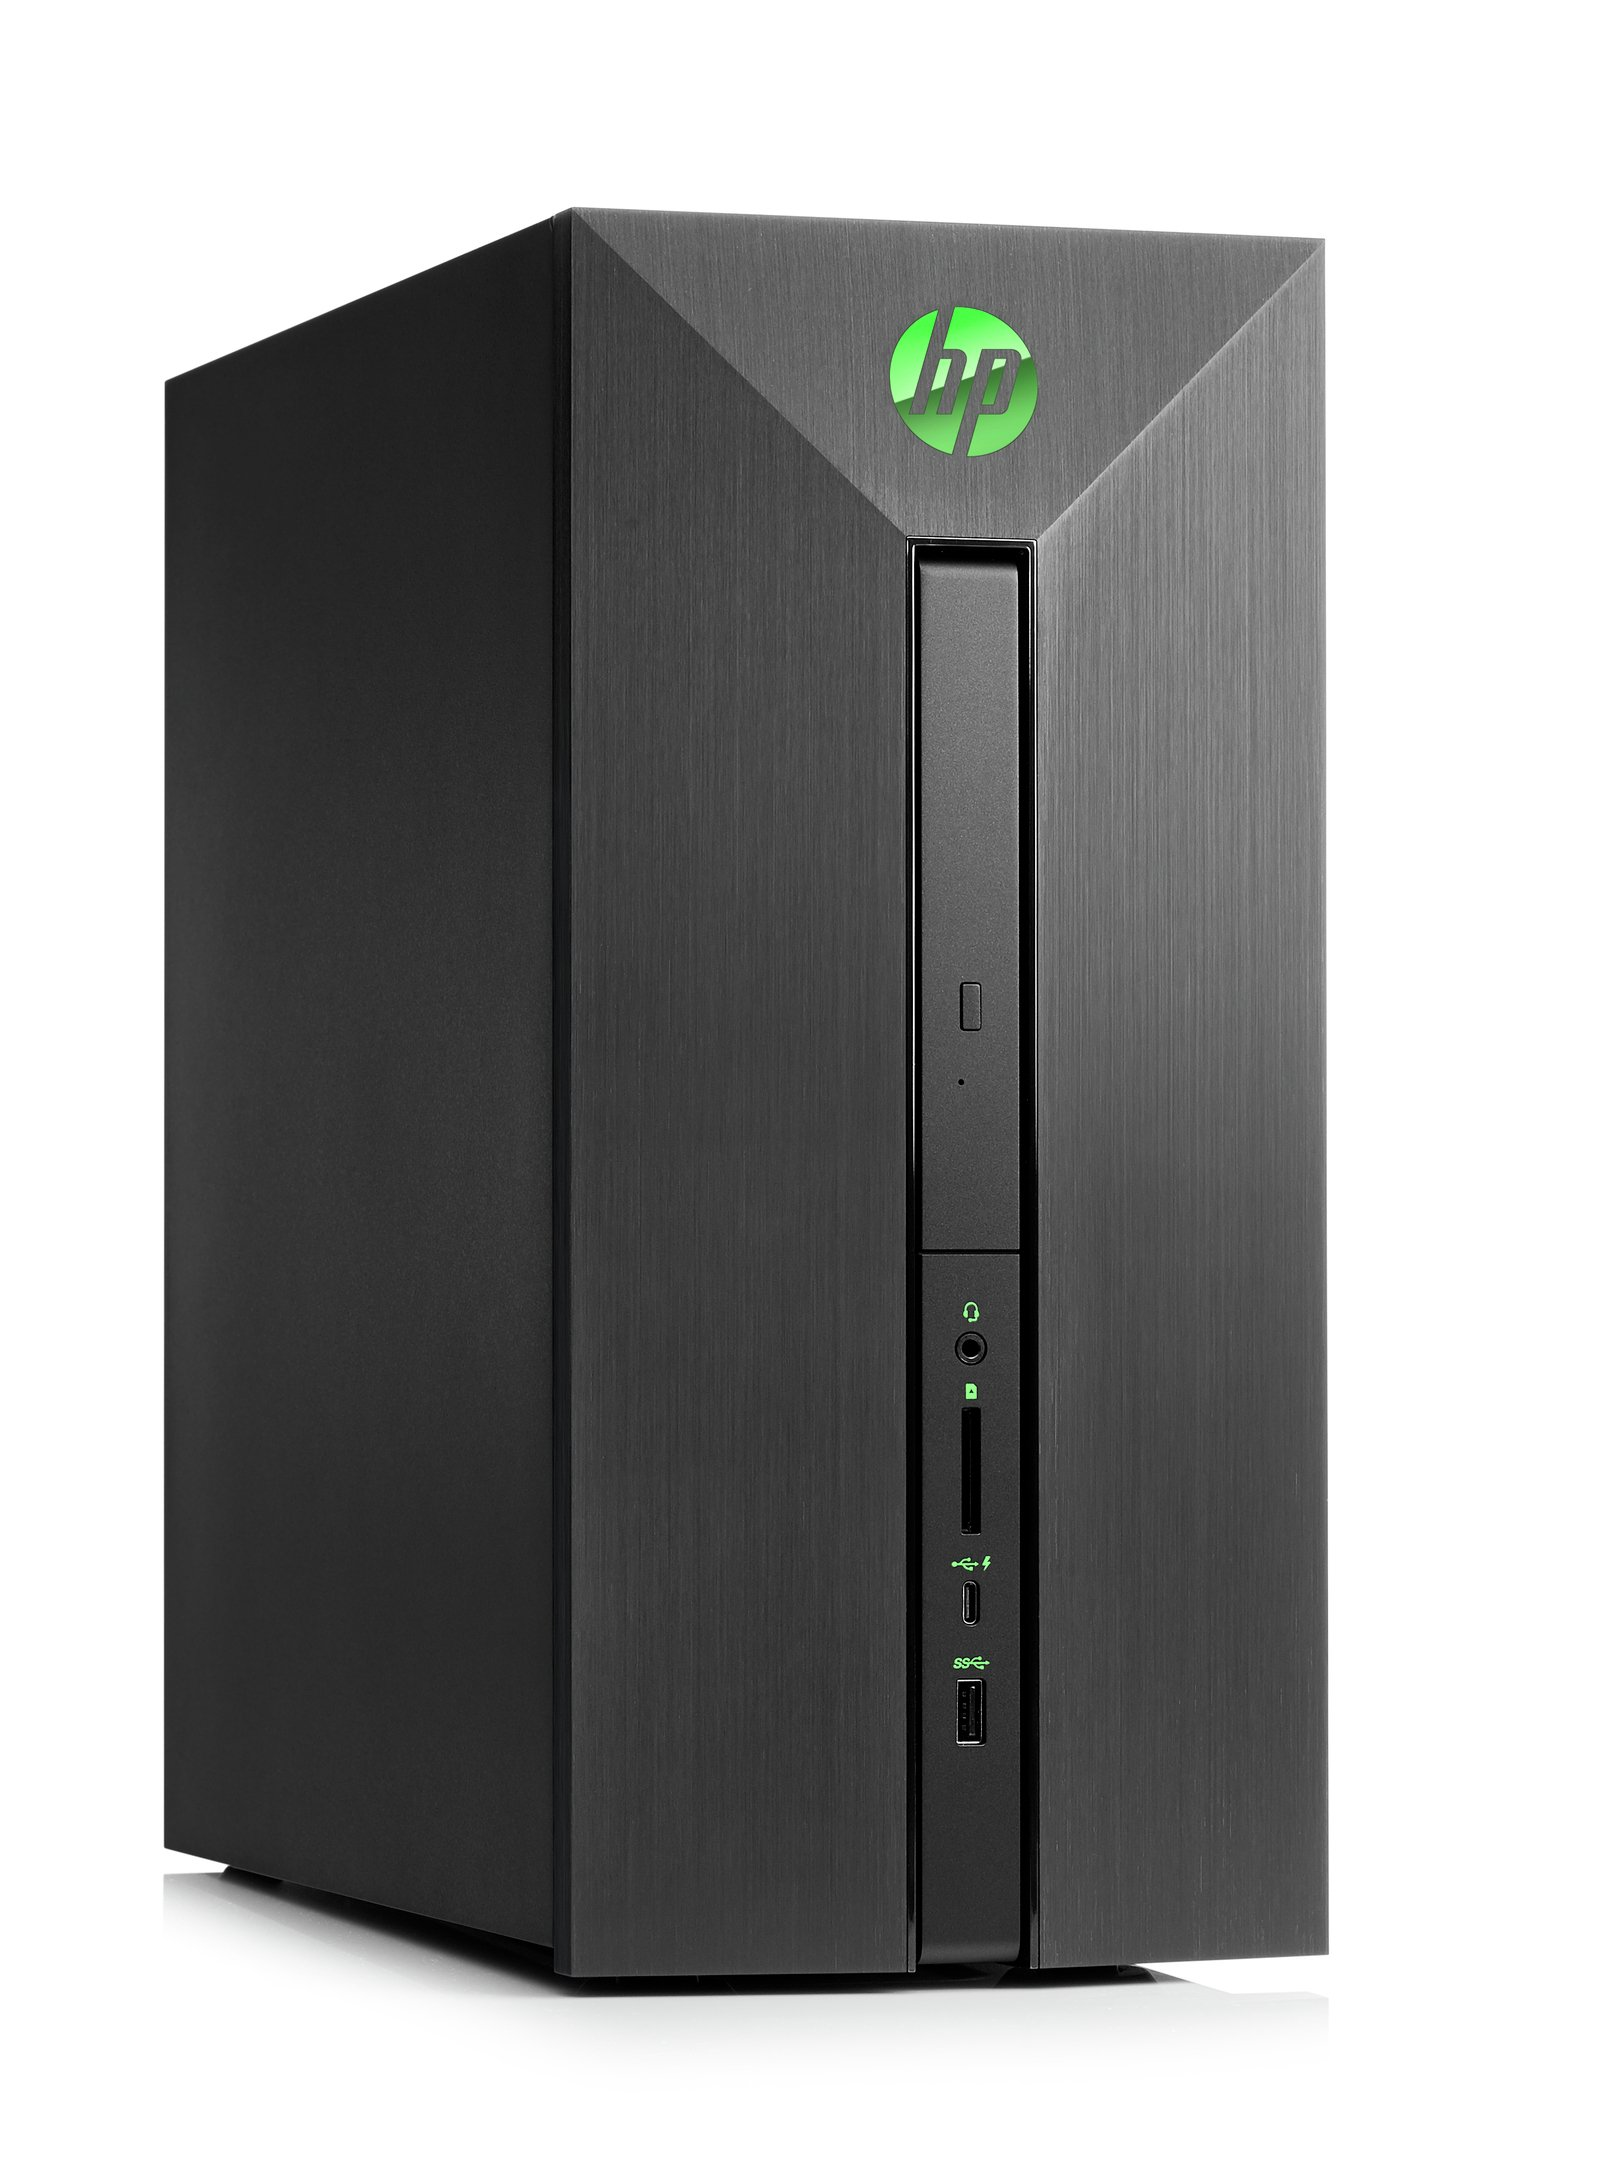 2018 Newest Flagship HP Pavilion Power Premium Gaming VR Ready Desktop Computer (AMD Ryzen 5 1400 3.2 GHz, Radeon RX 580, 8GB DDR4 RAM, 256GB SSD + 1TB HDD, Bluetooth, HDMI, DVD, Windows 10) by HP (Image #3)